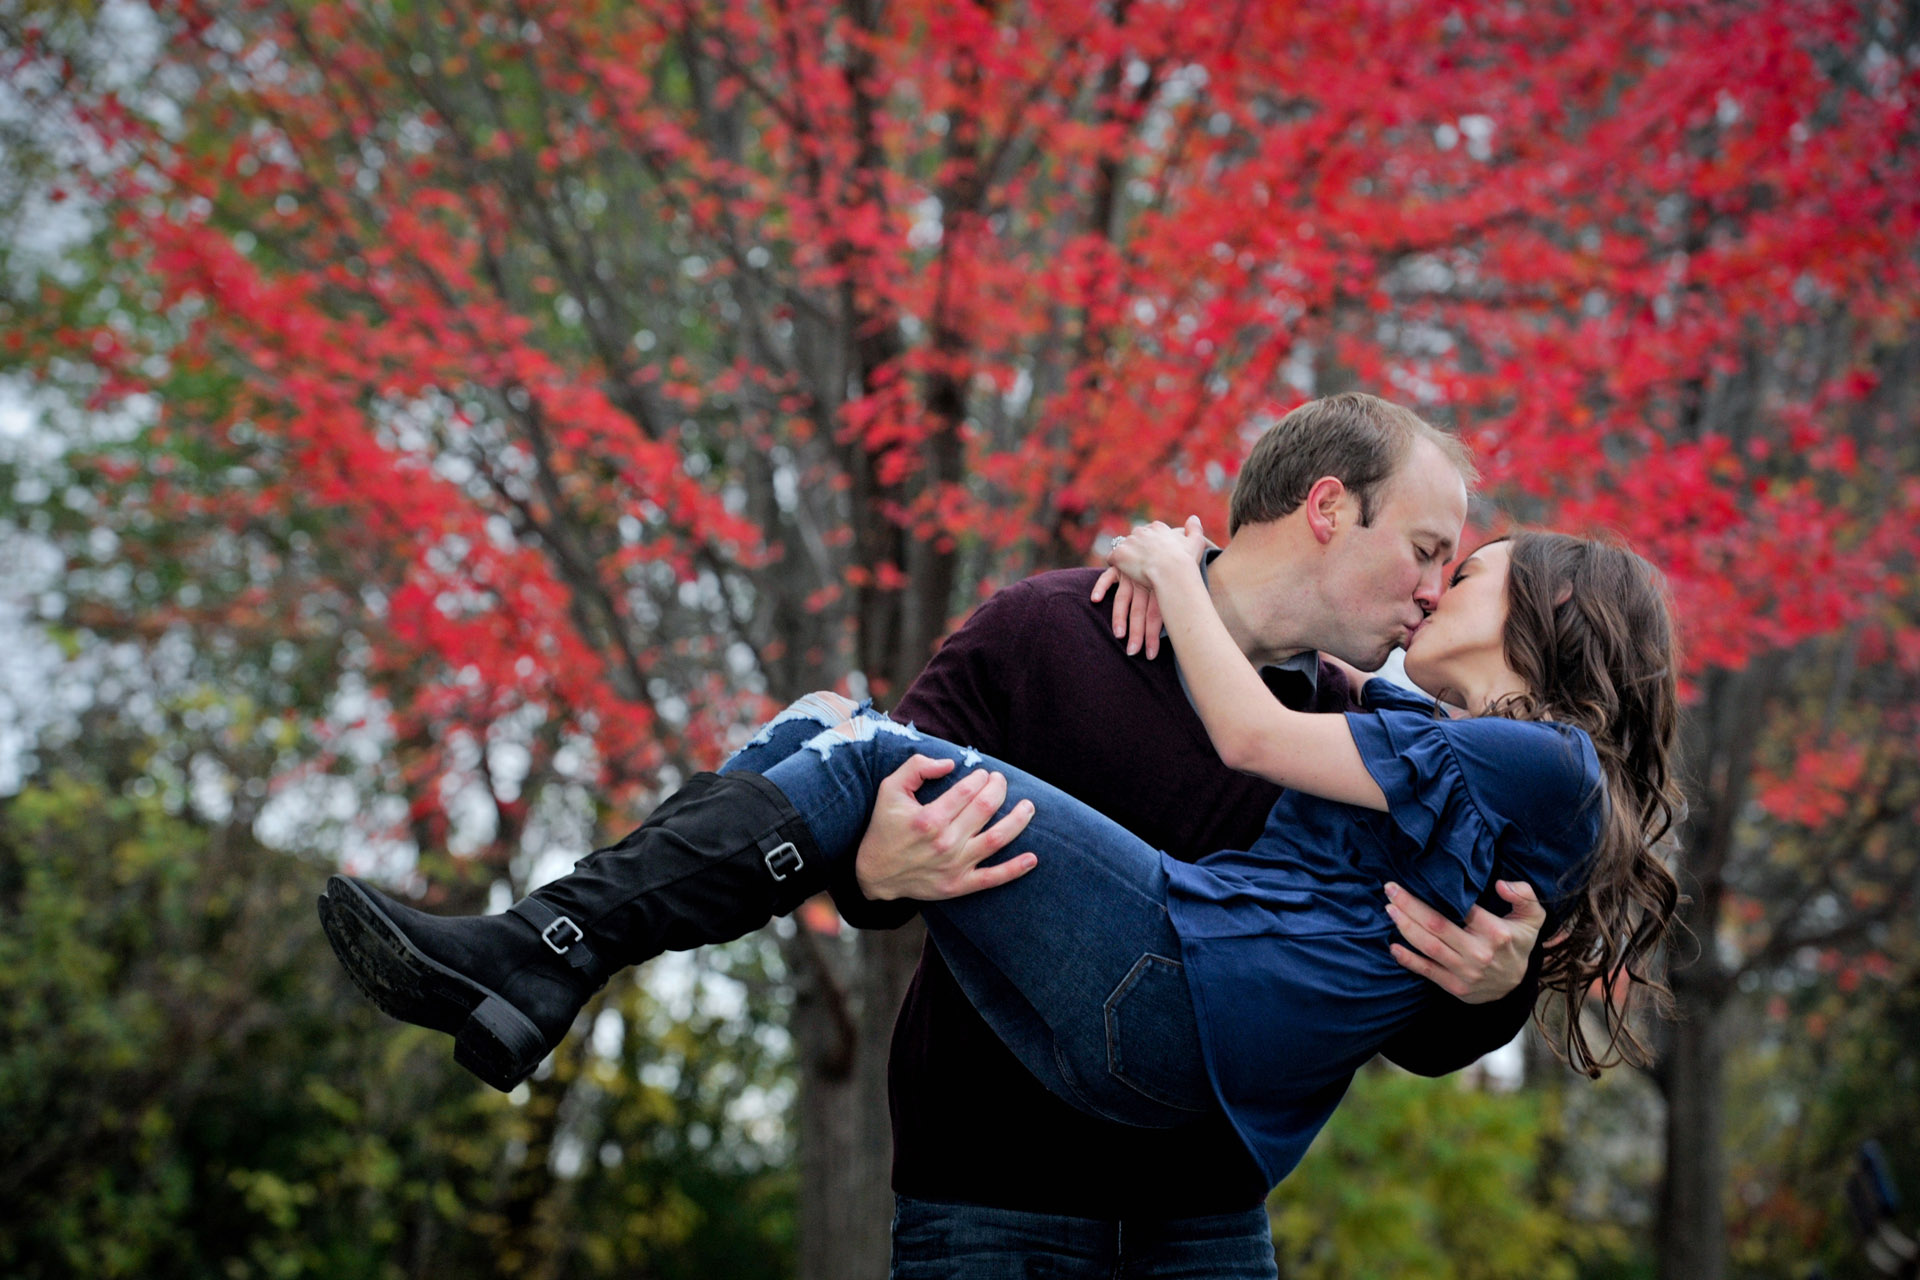 Best Detroit engagement photographer's fun and candid engagement photos combine romance and personality like this kiss with the red leaves in metro Detroit, Michigan.